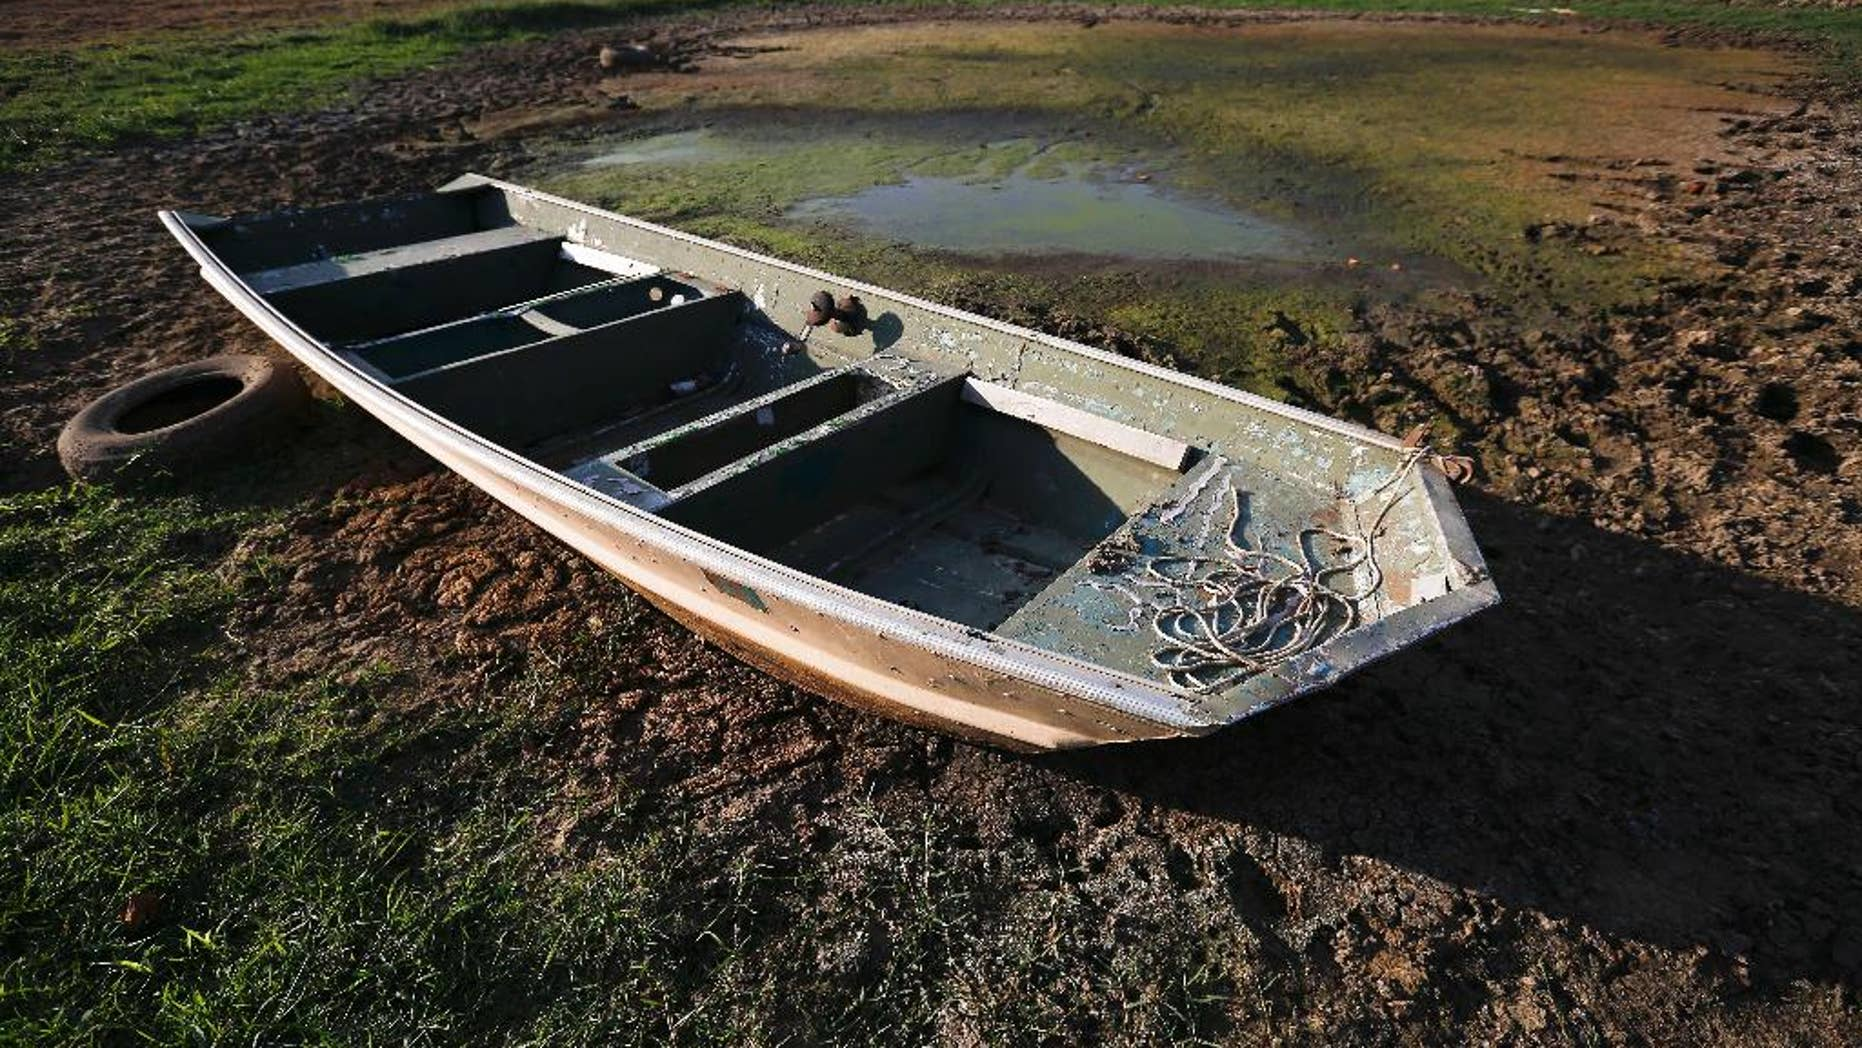 FILE - In this Wednesday, Oct. 26, 2016 file photo, an abandoned boat sits in the remains of a dried out pond in Dawson, Ala.